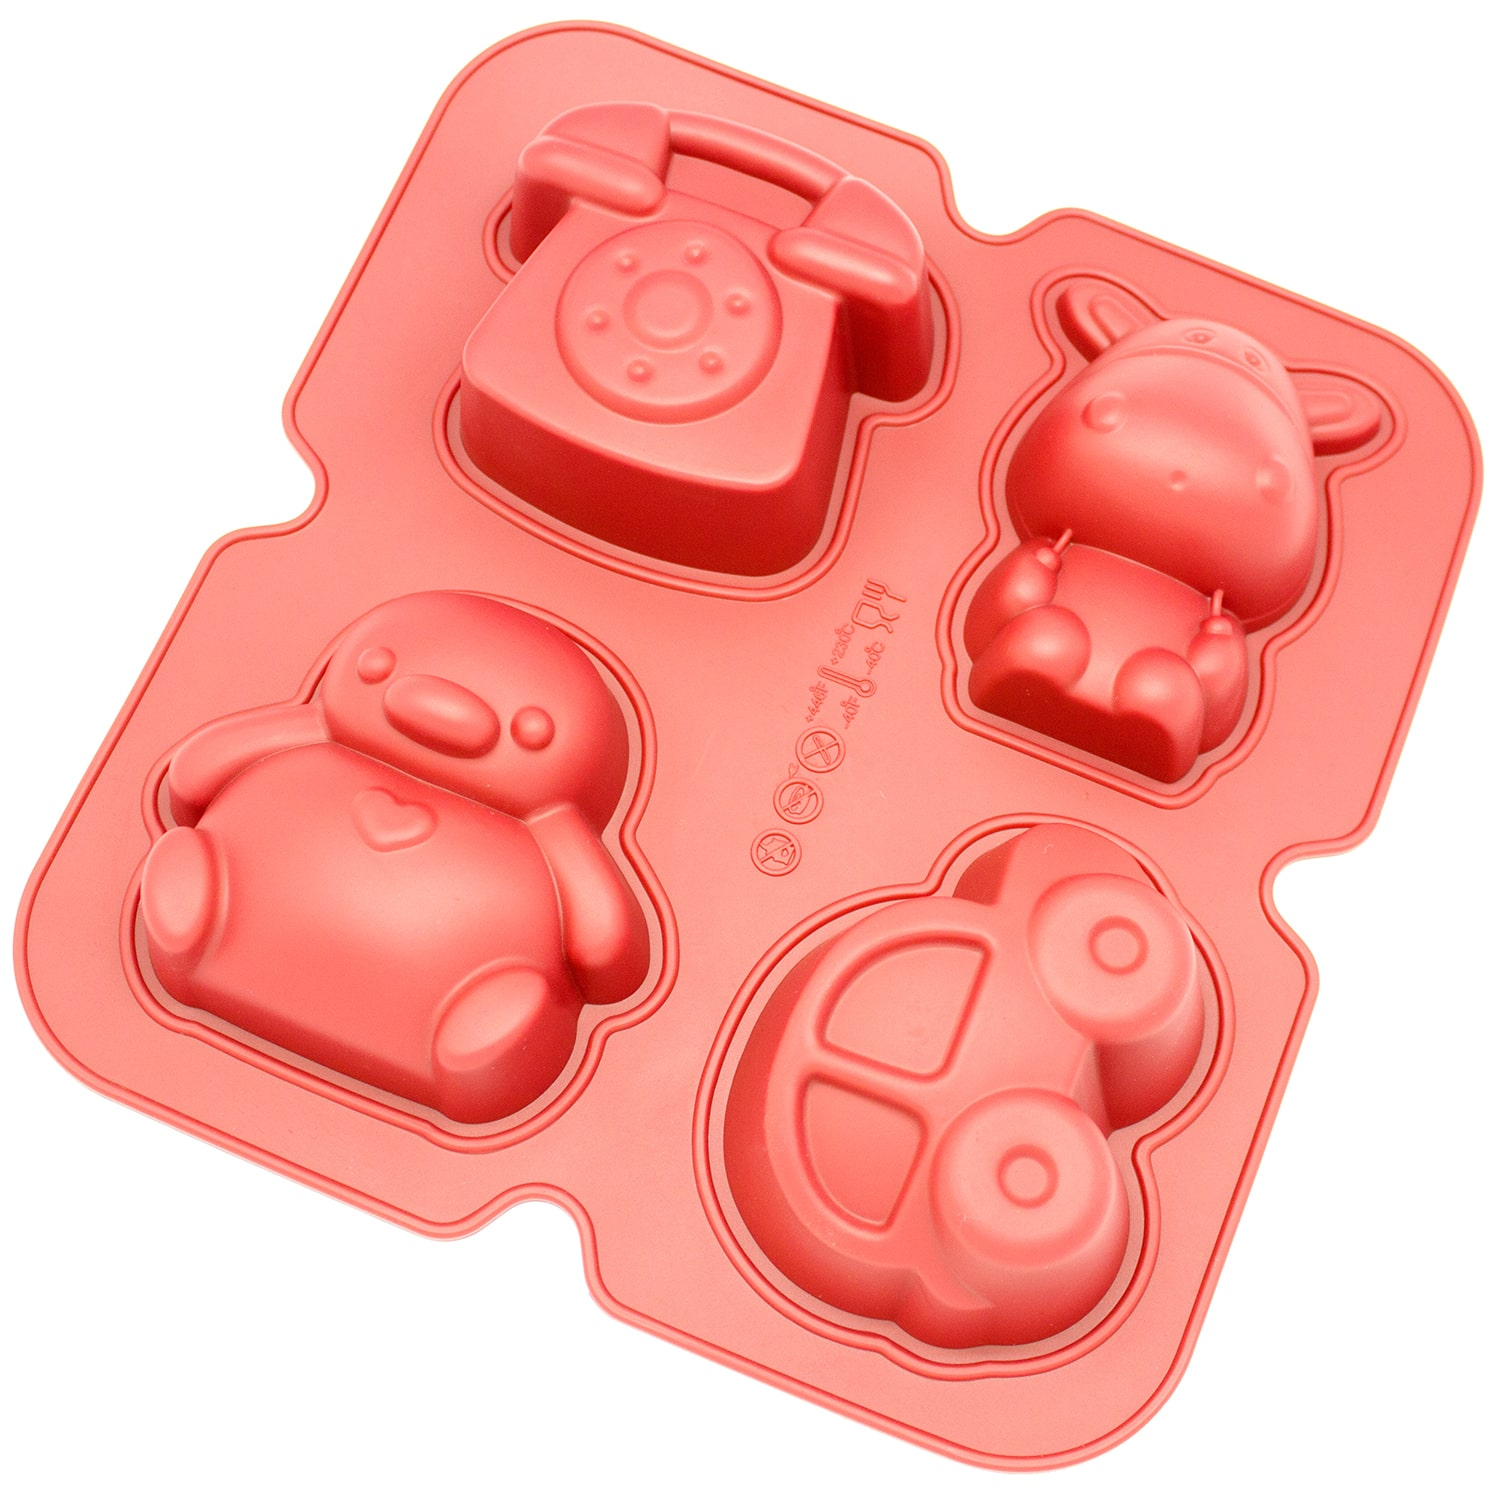 Freshware 4-cavity Penguin, Hippo, Toy Car and Telephone Silicone Mold by Overstock